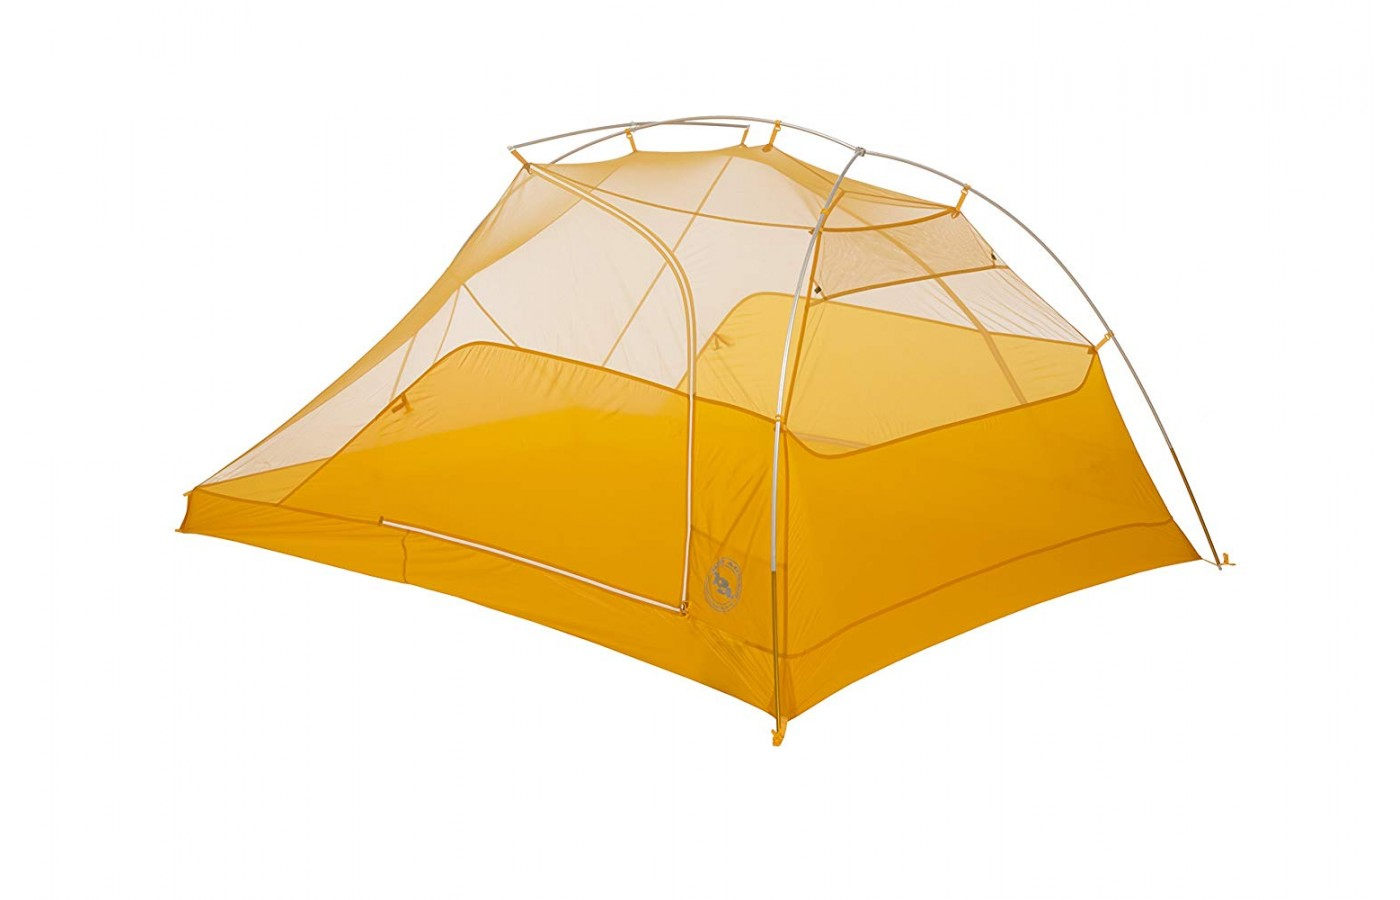 The tent is made out of lightweight materials.